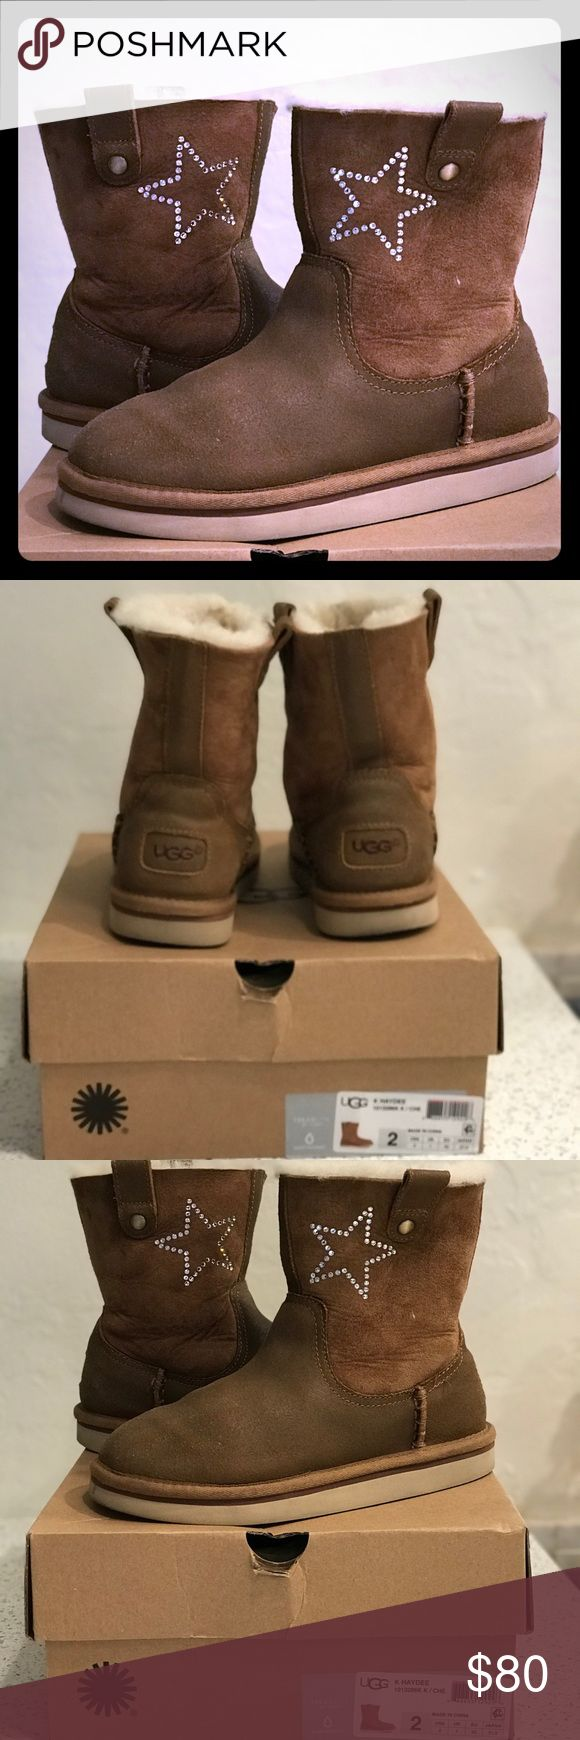 UGG Kids Haydee Swarovski Crystal Star Boots Sz 2 UGG Authentic Kids Haydee Custom w/ Swarovski  Crystal Star Suede Boots Size 2 We live Florida and going skiing once a year for one week, that is the entire duration these boots have been worn. Got them custom designed at the UGG store with a Swarovski Crystal Star. Excellent condition. Sprayed to protect from water and stain. I have the original box UGG Shoes Rain & Snow Boots